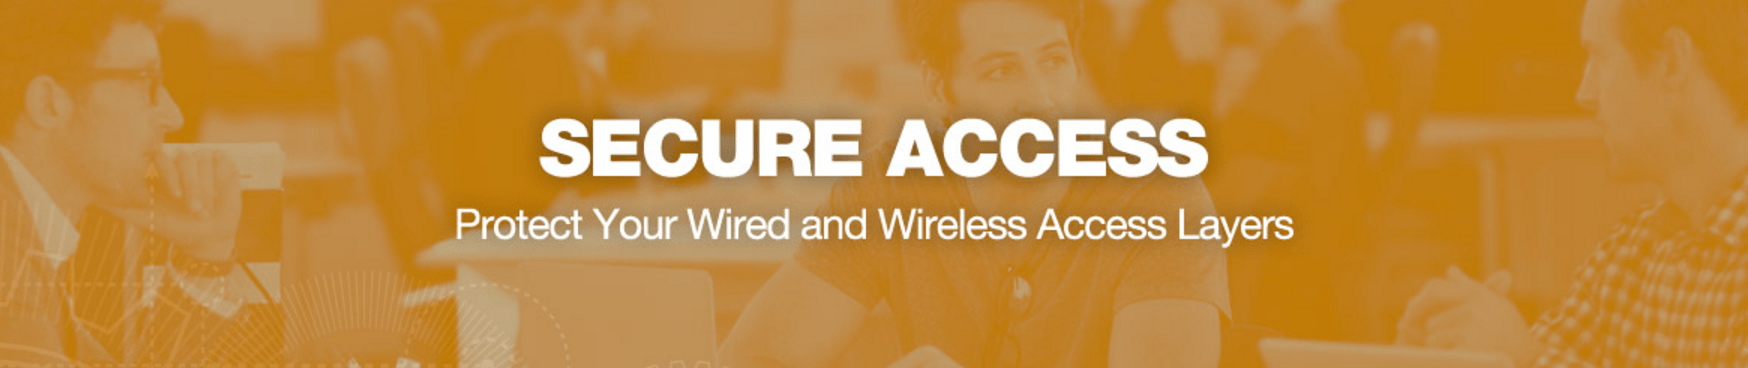 Fortinet Secure Access